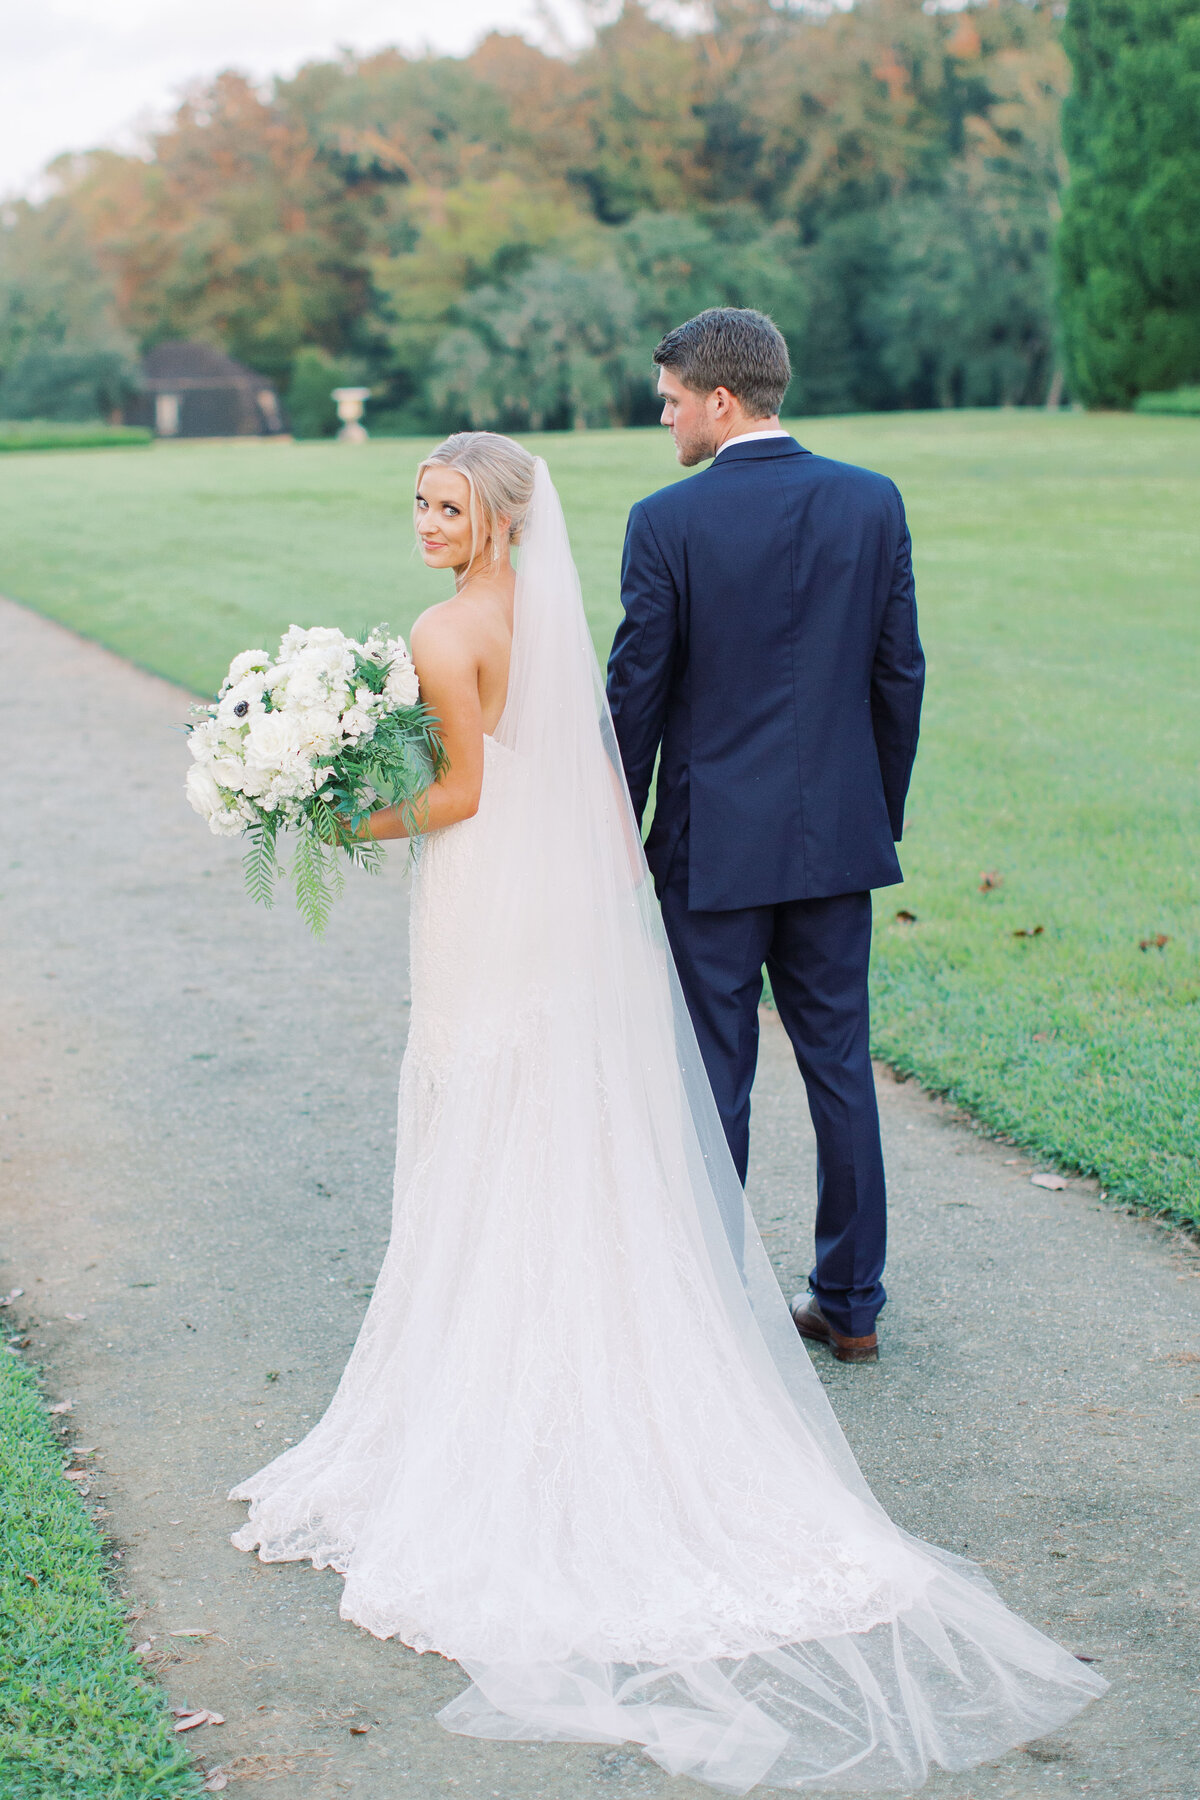 Melton_Wedding__Middleton_Place_Plantation_Charleston_South_Carolina_Jacksonville_Florida_Devon_Donnahoo_Photography__0782